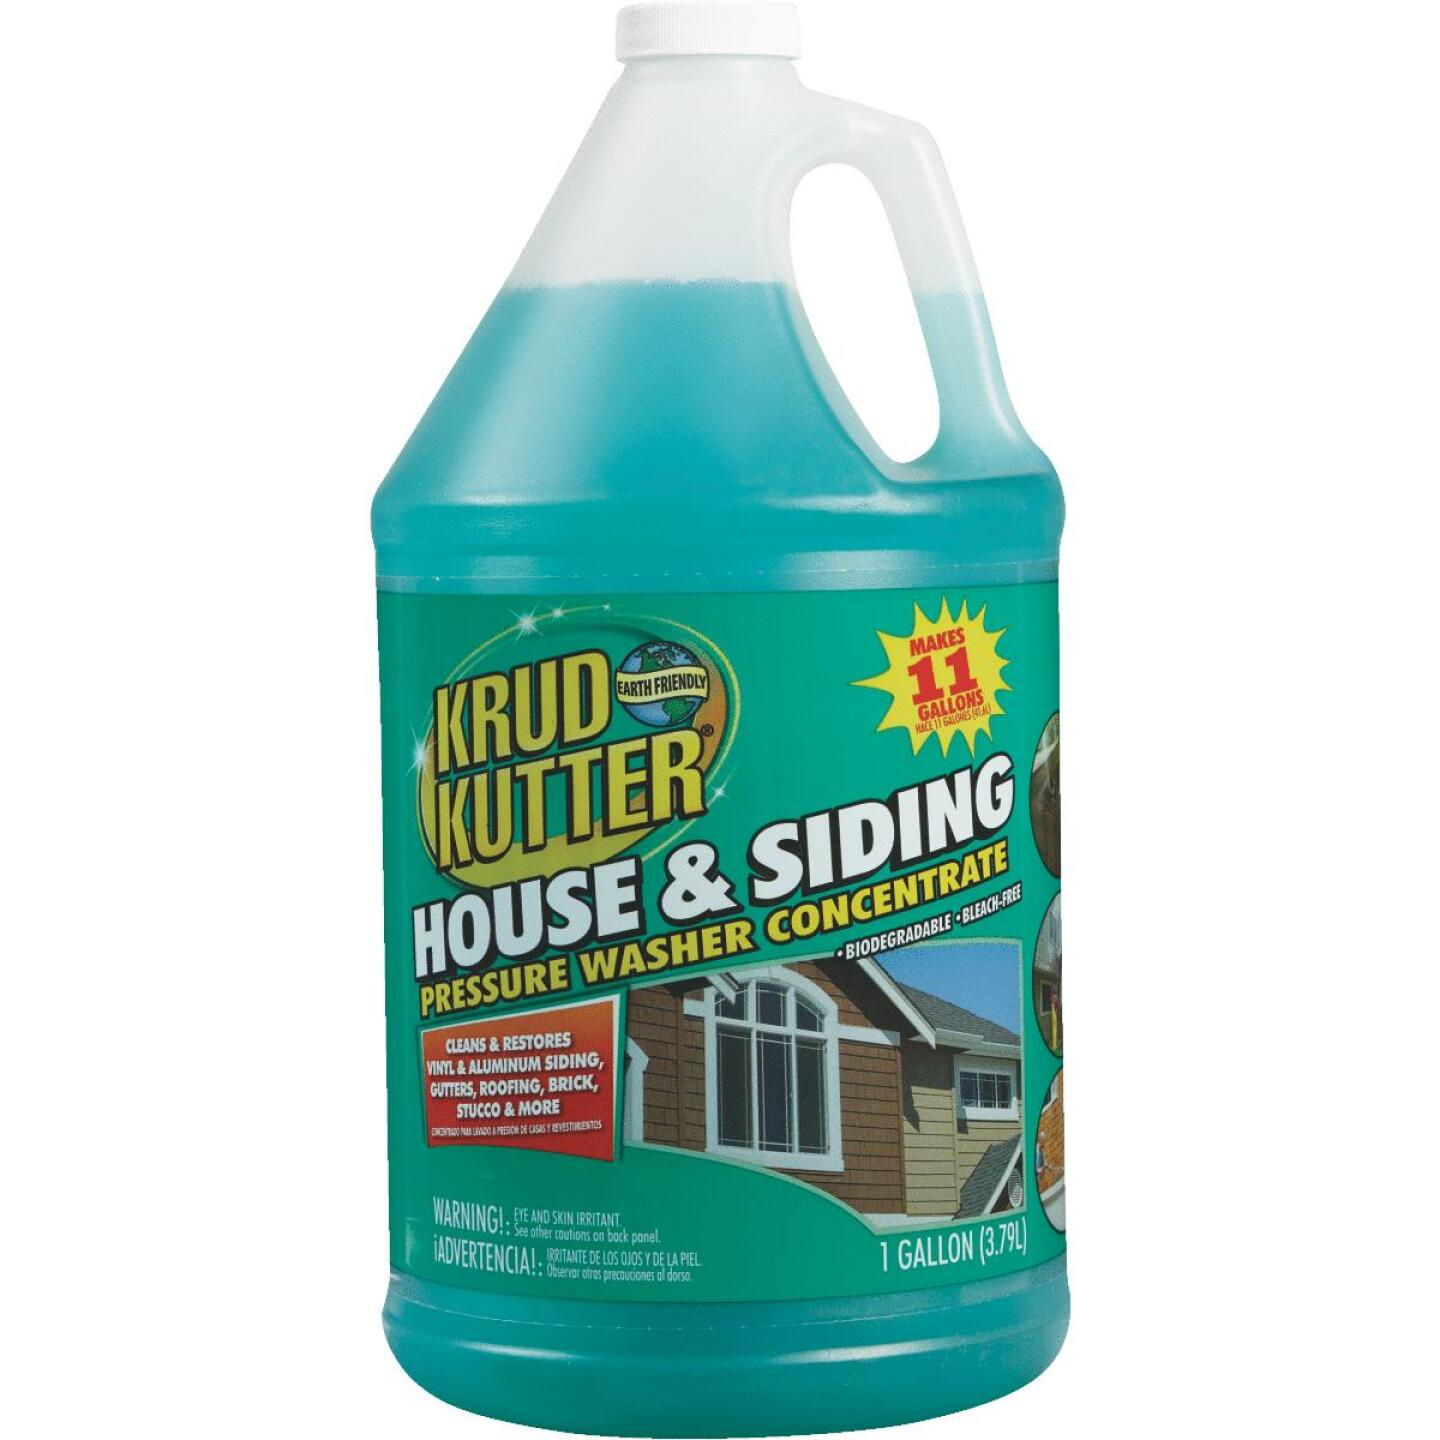 Krud Kutter House and Siding Cleaner Pressure Washer Concentrate, 1 Gal. Image 1